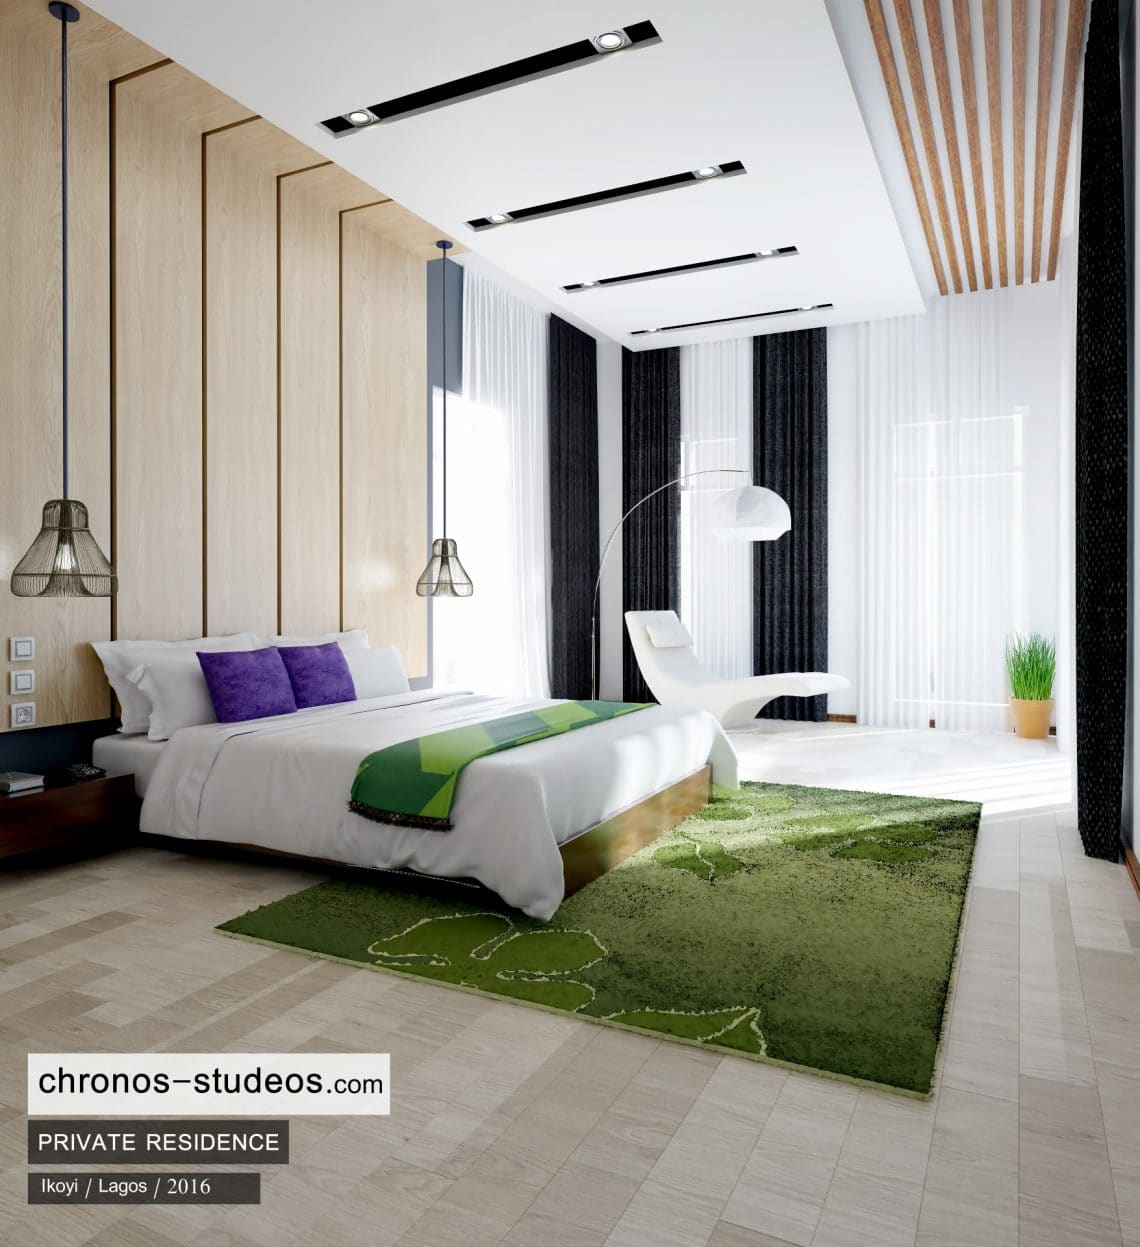 Bedroom Interior Design 3d Rendering Lagos Nigeria Chronos Studeos Architects